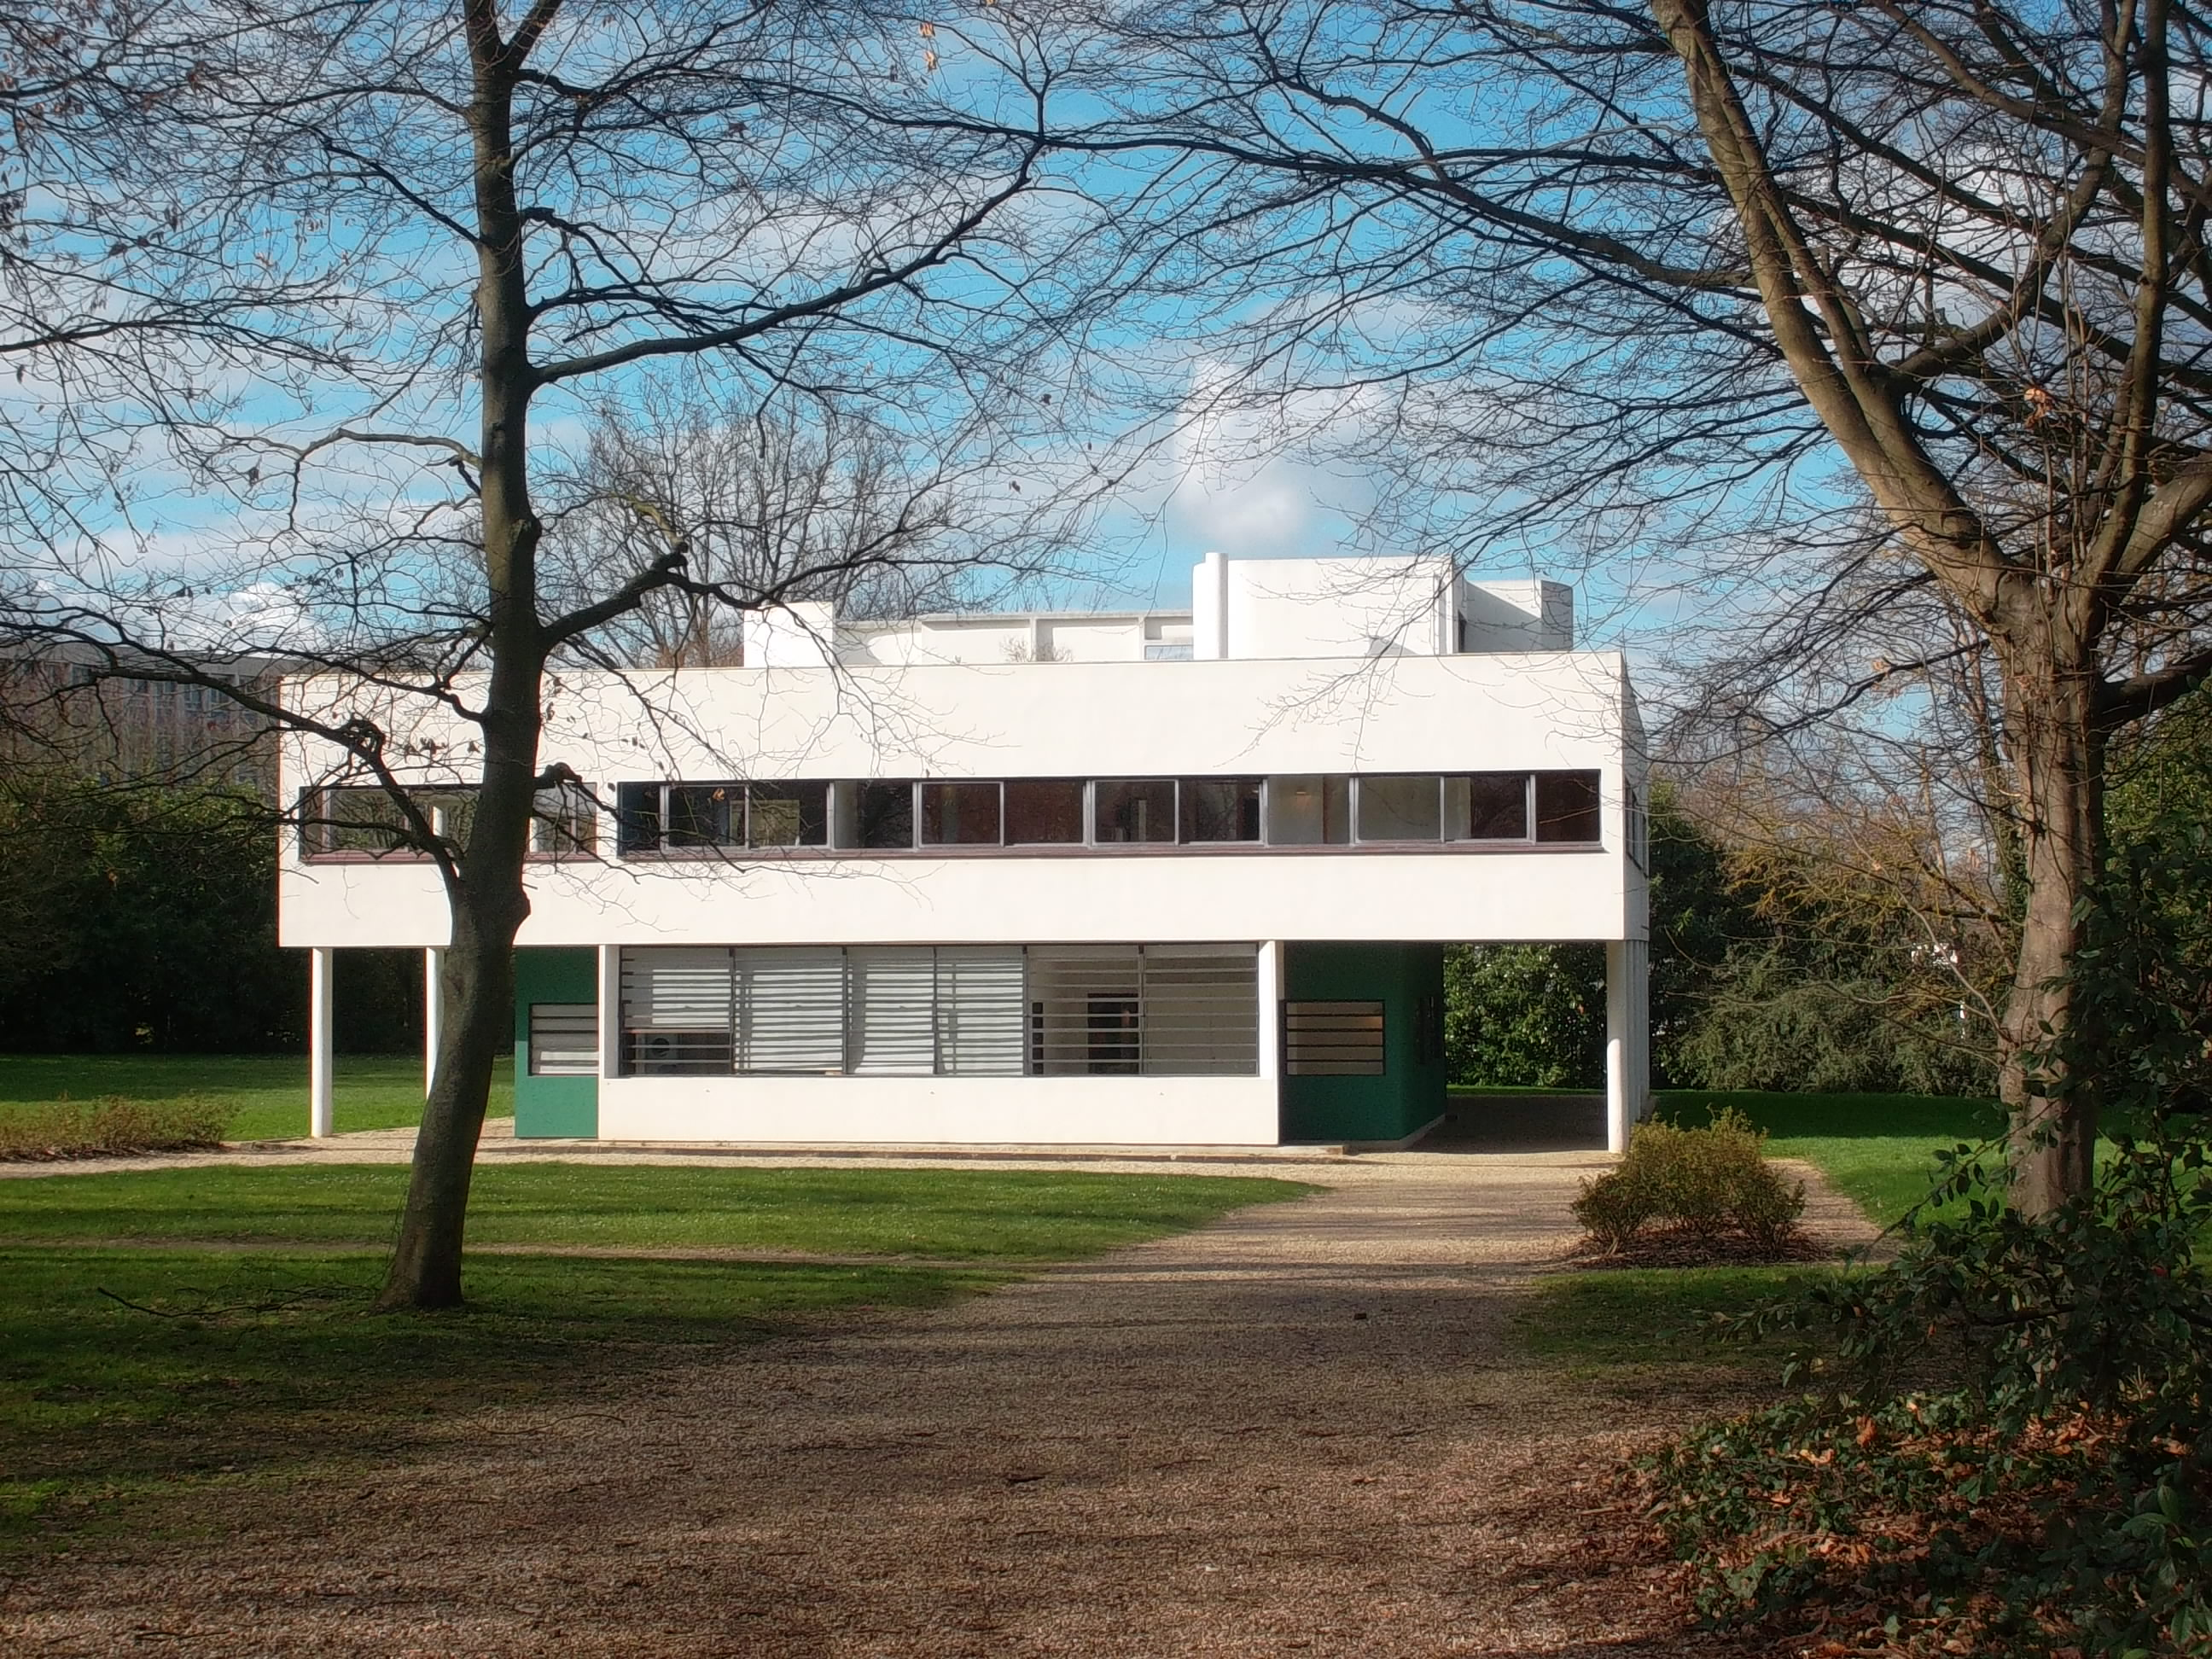 Villa savoye in poissy for Poissy le corbusier